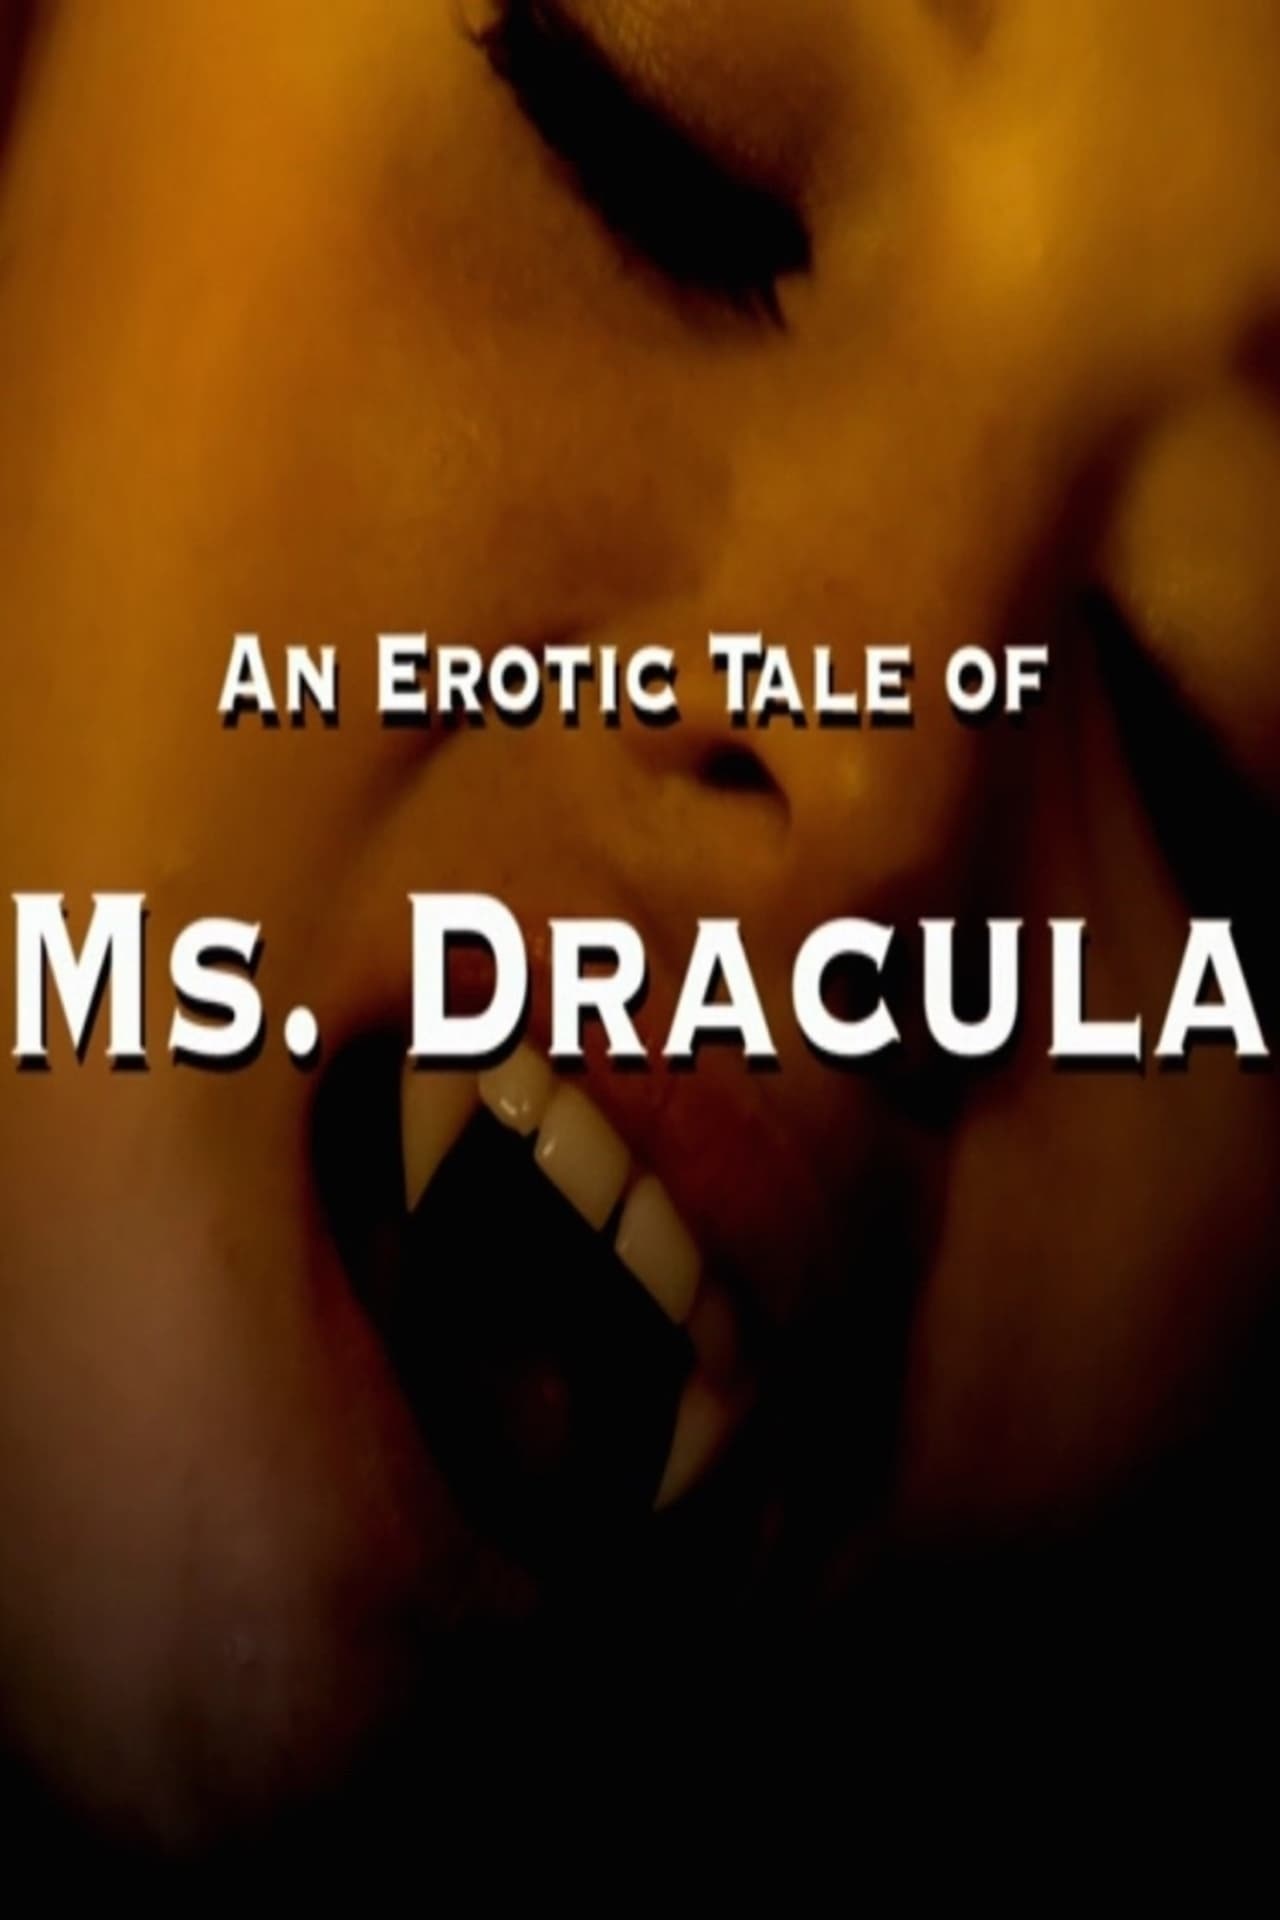 An Erotic Tale Of Ms Dracula an erotic tale of ms. dracula subtitles english